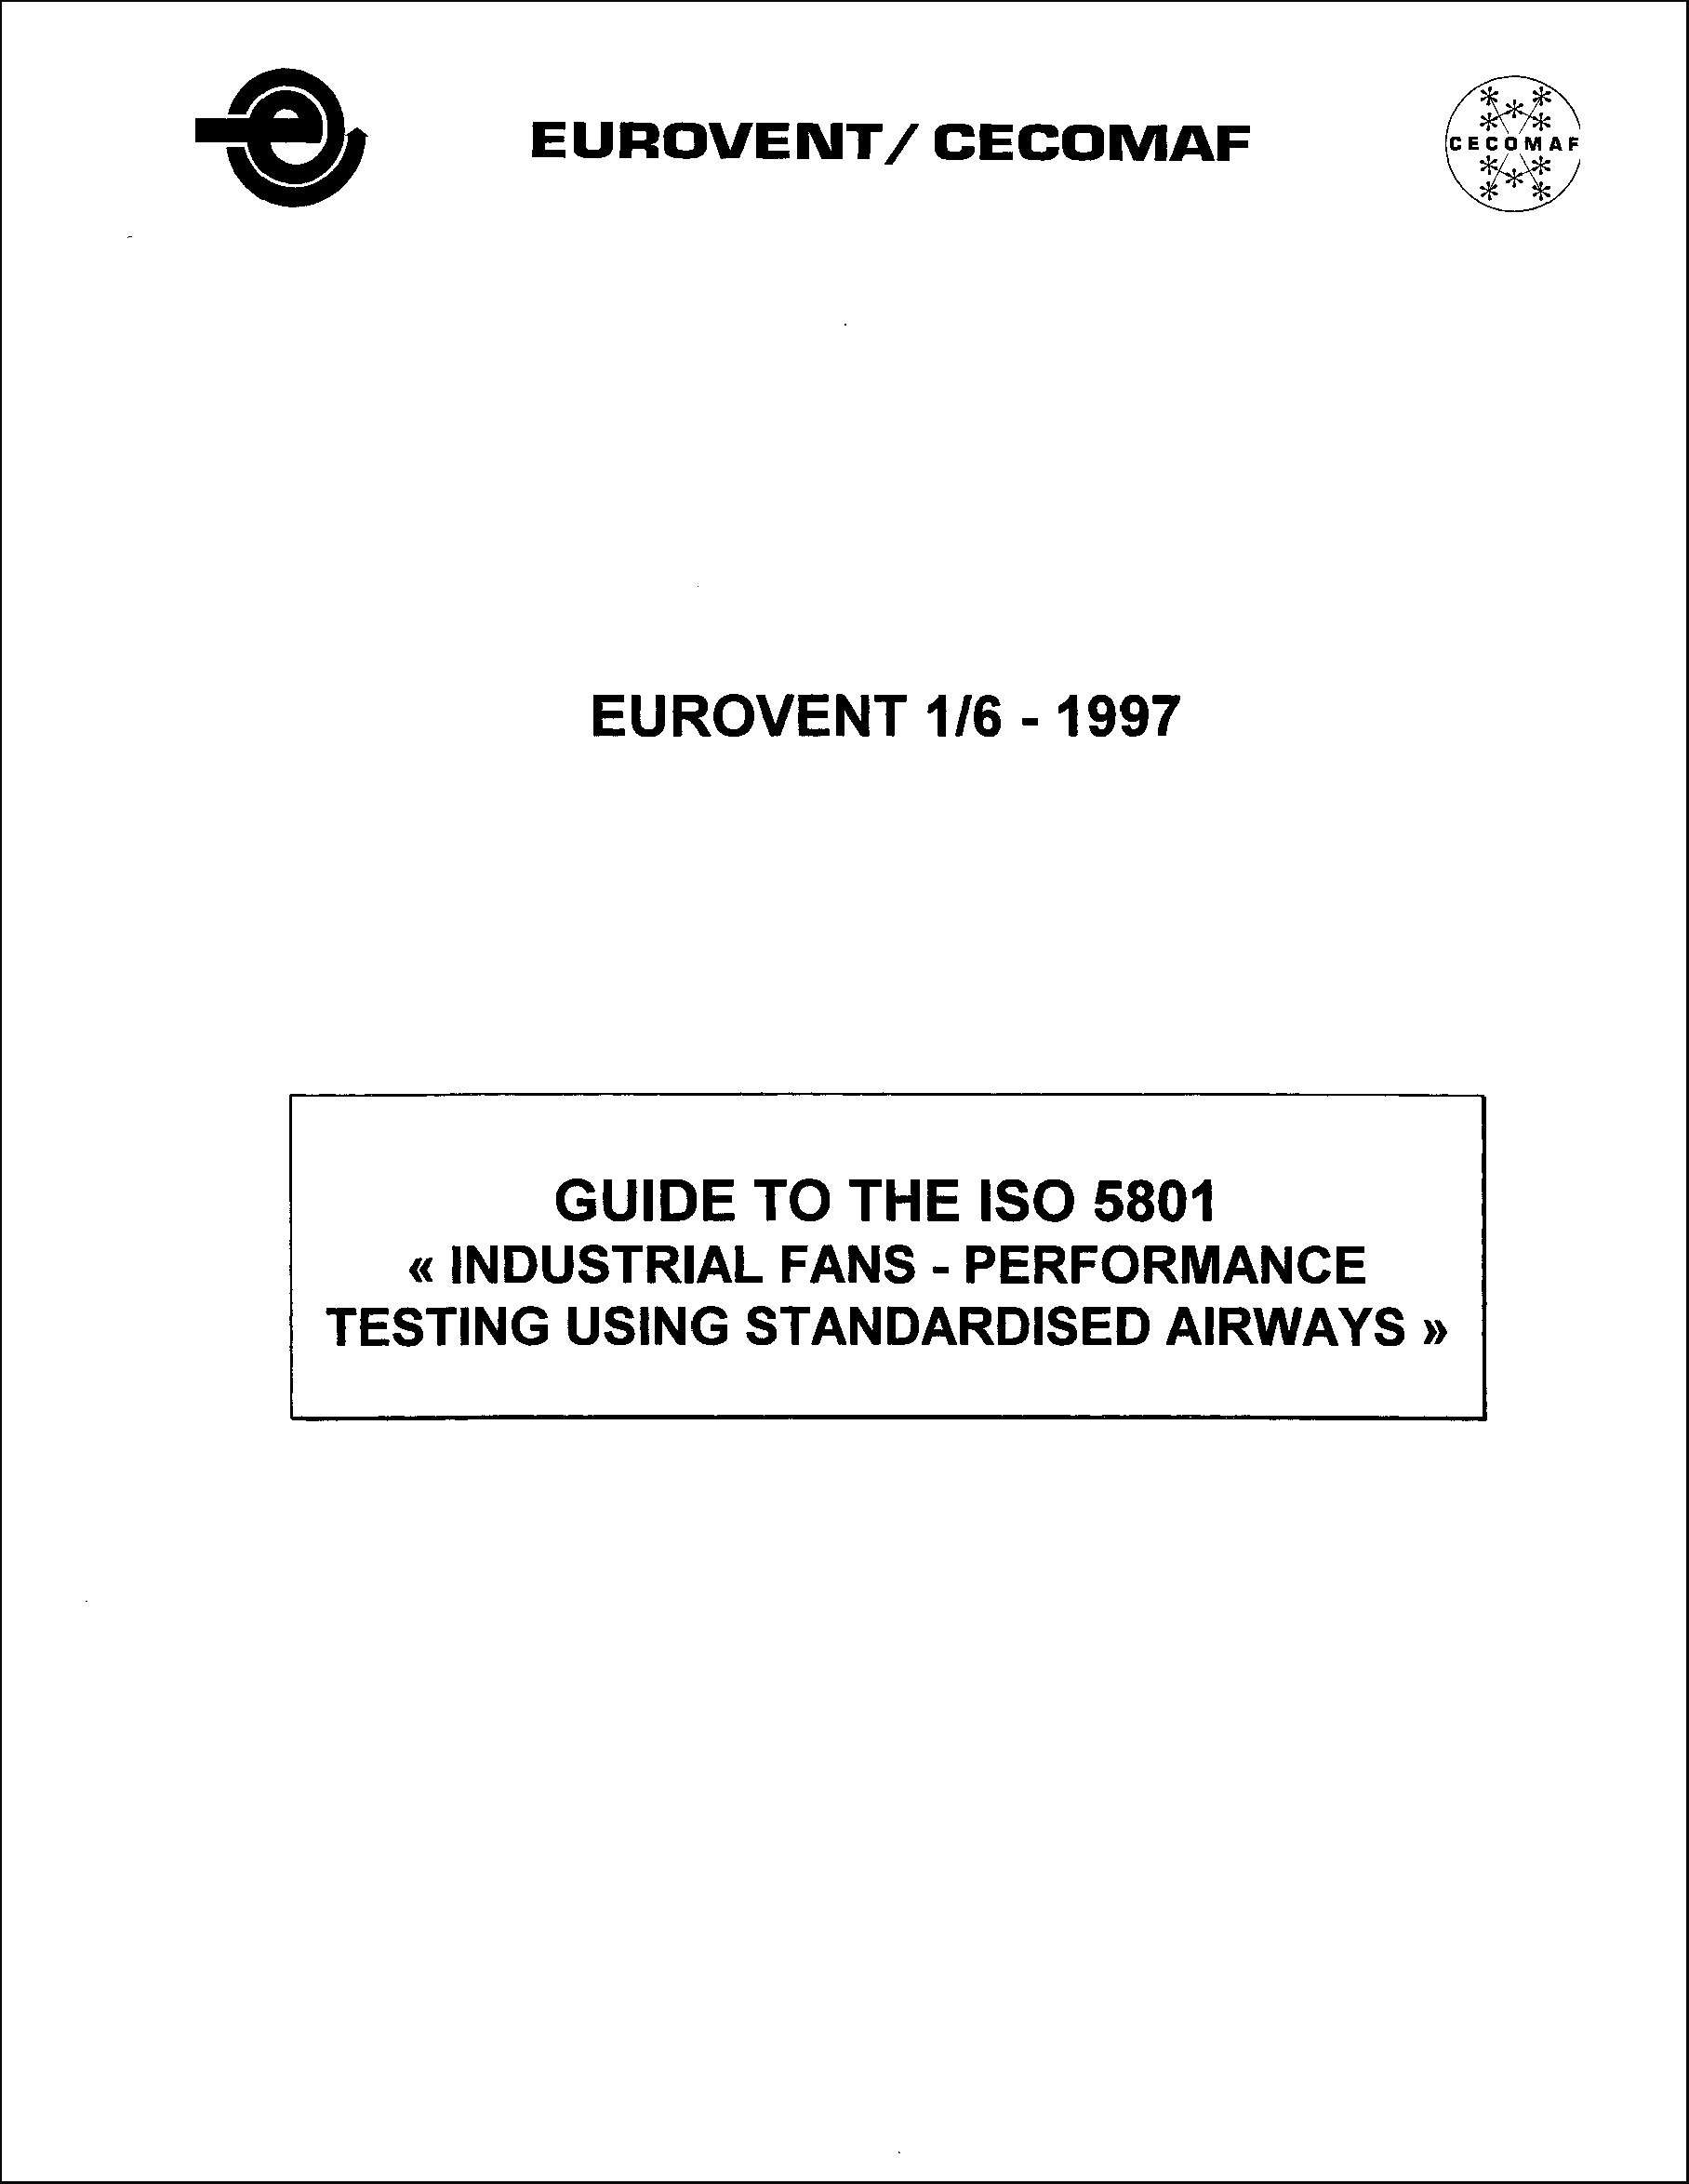 1997 - Guide to the ISO 5801